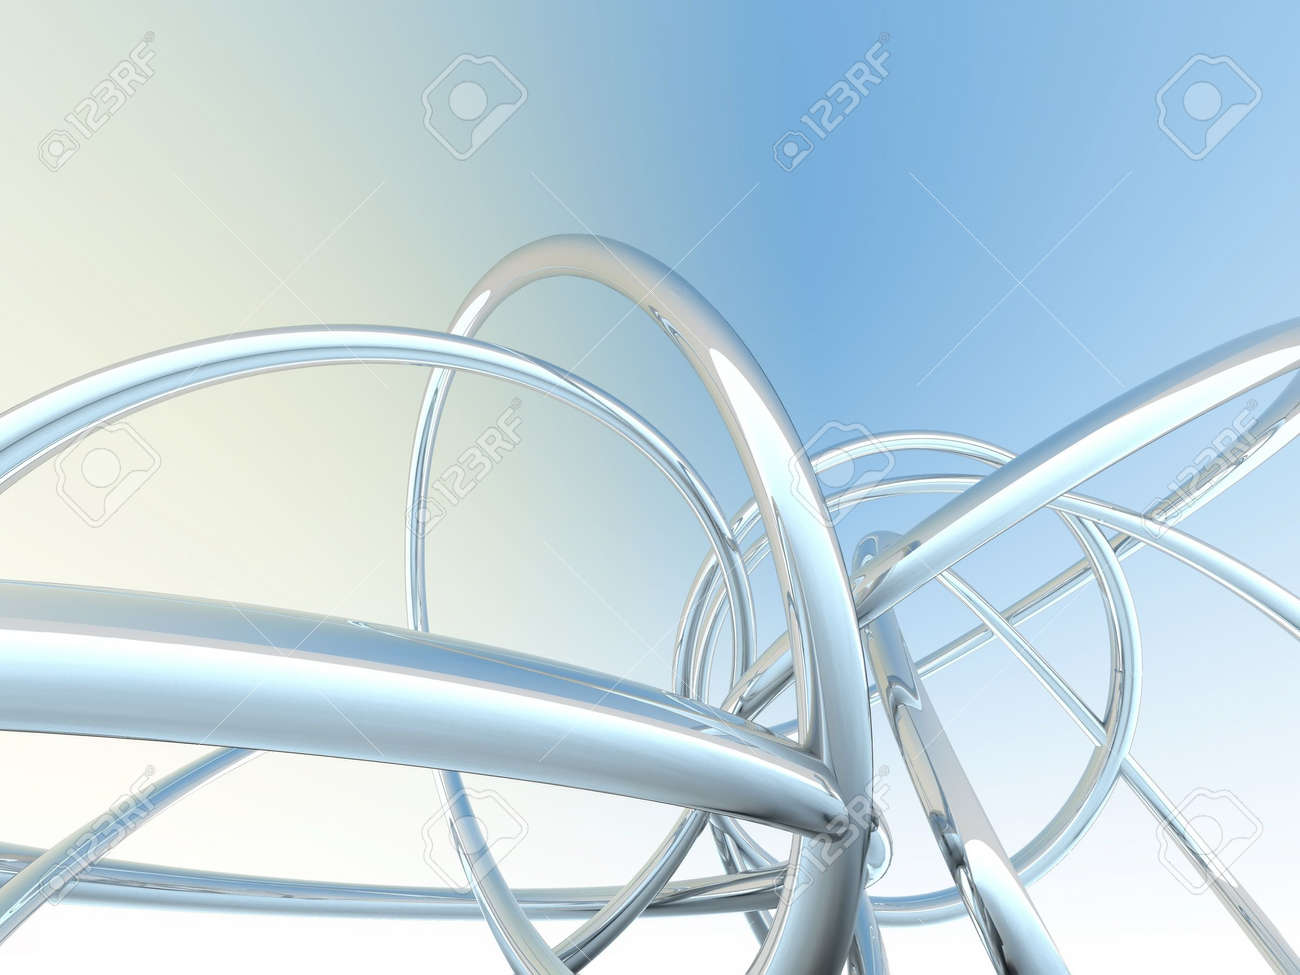 Abstract metallic pipes on a yellow-blue background Stock Photo - 2027855